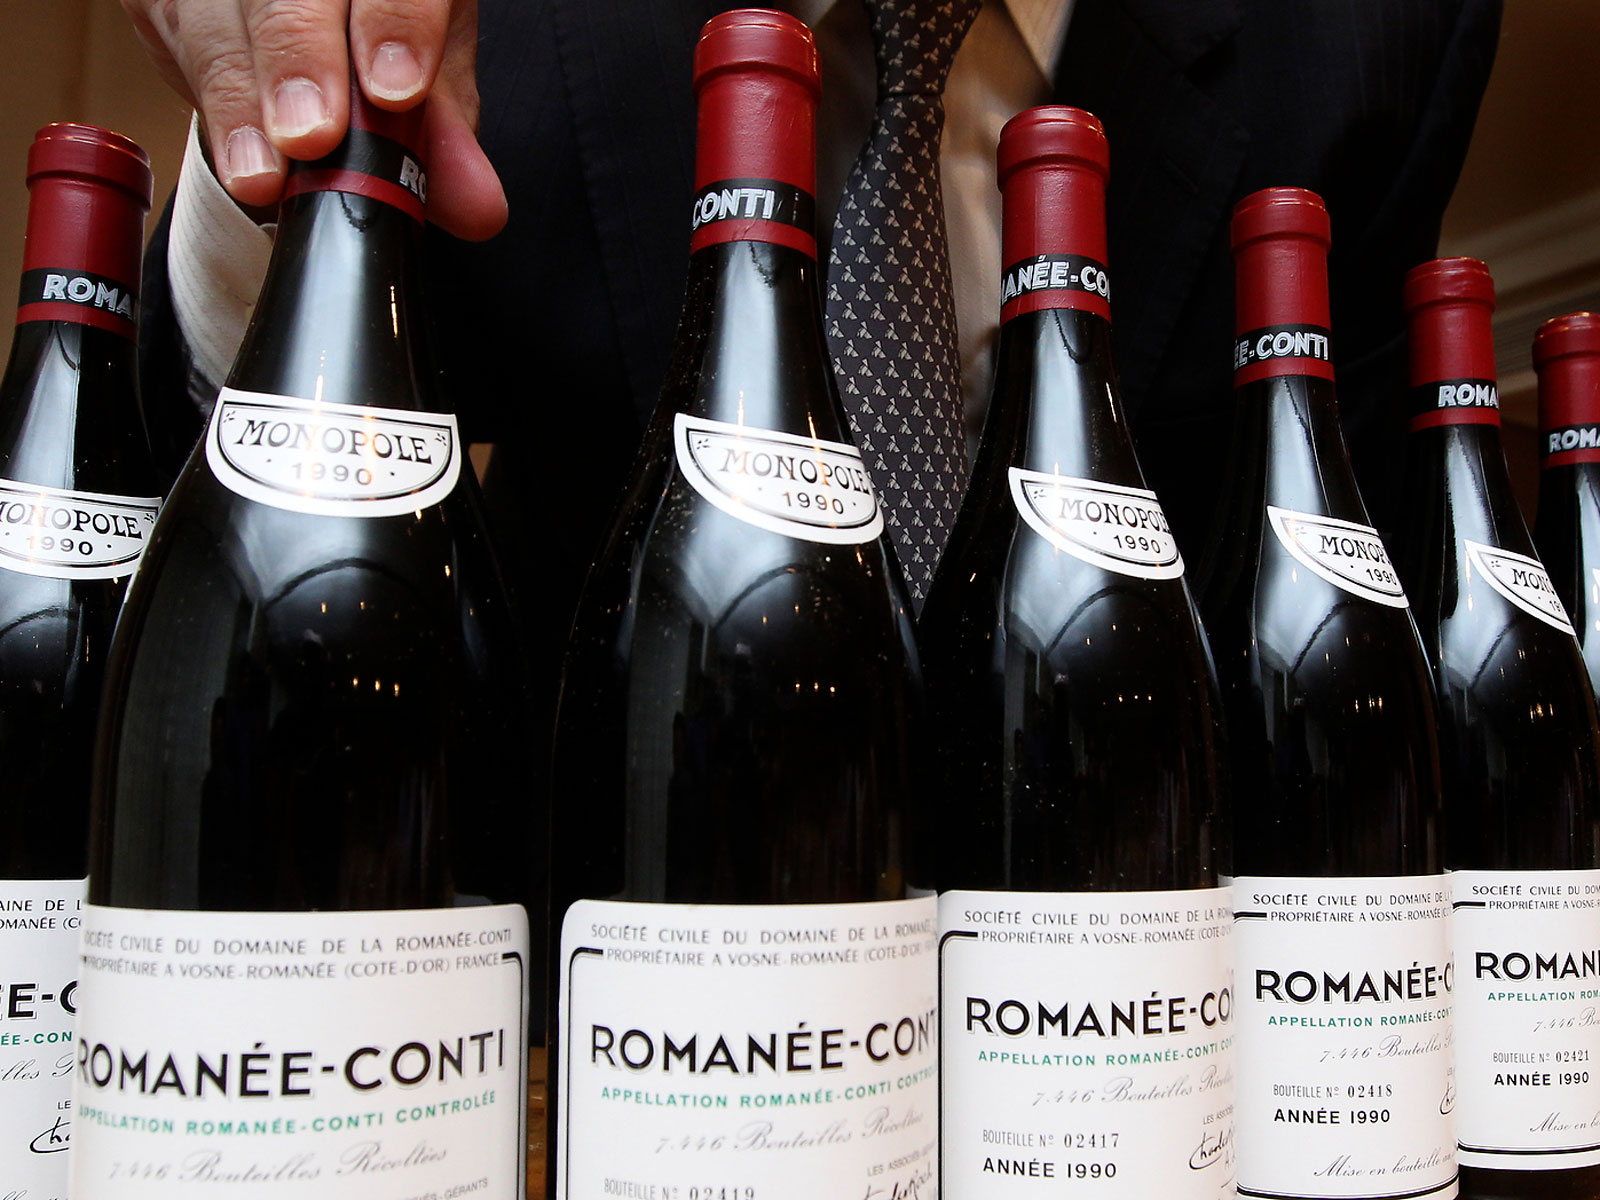 record-wine-auction-romanee-conti-FT-BLOG0319.jpg